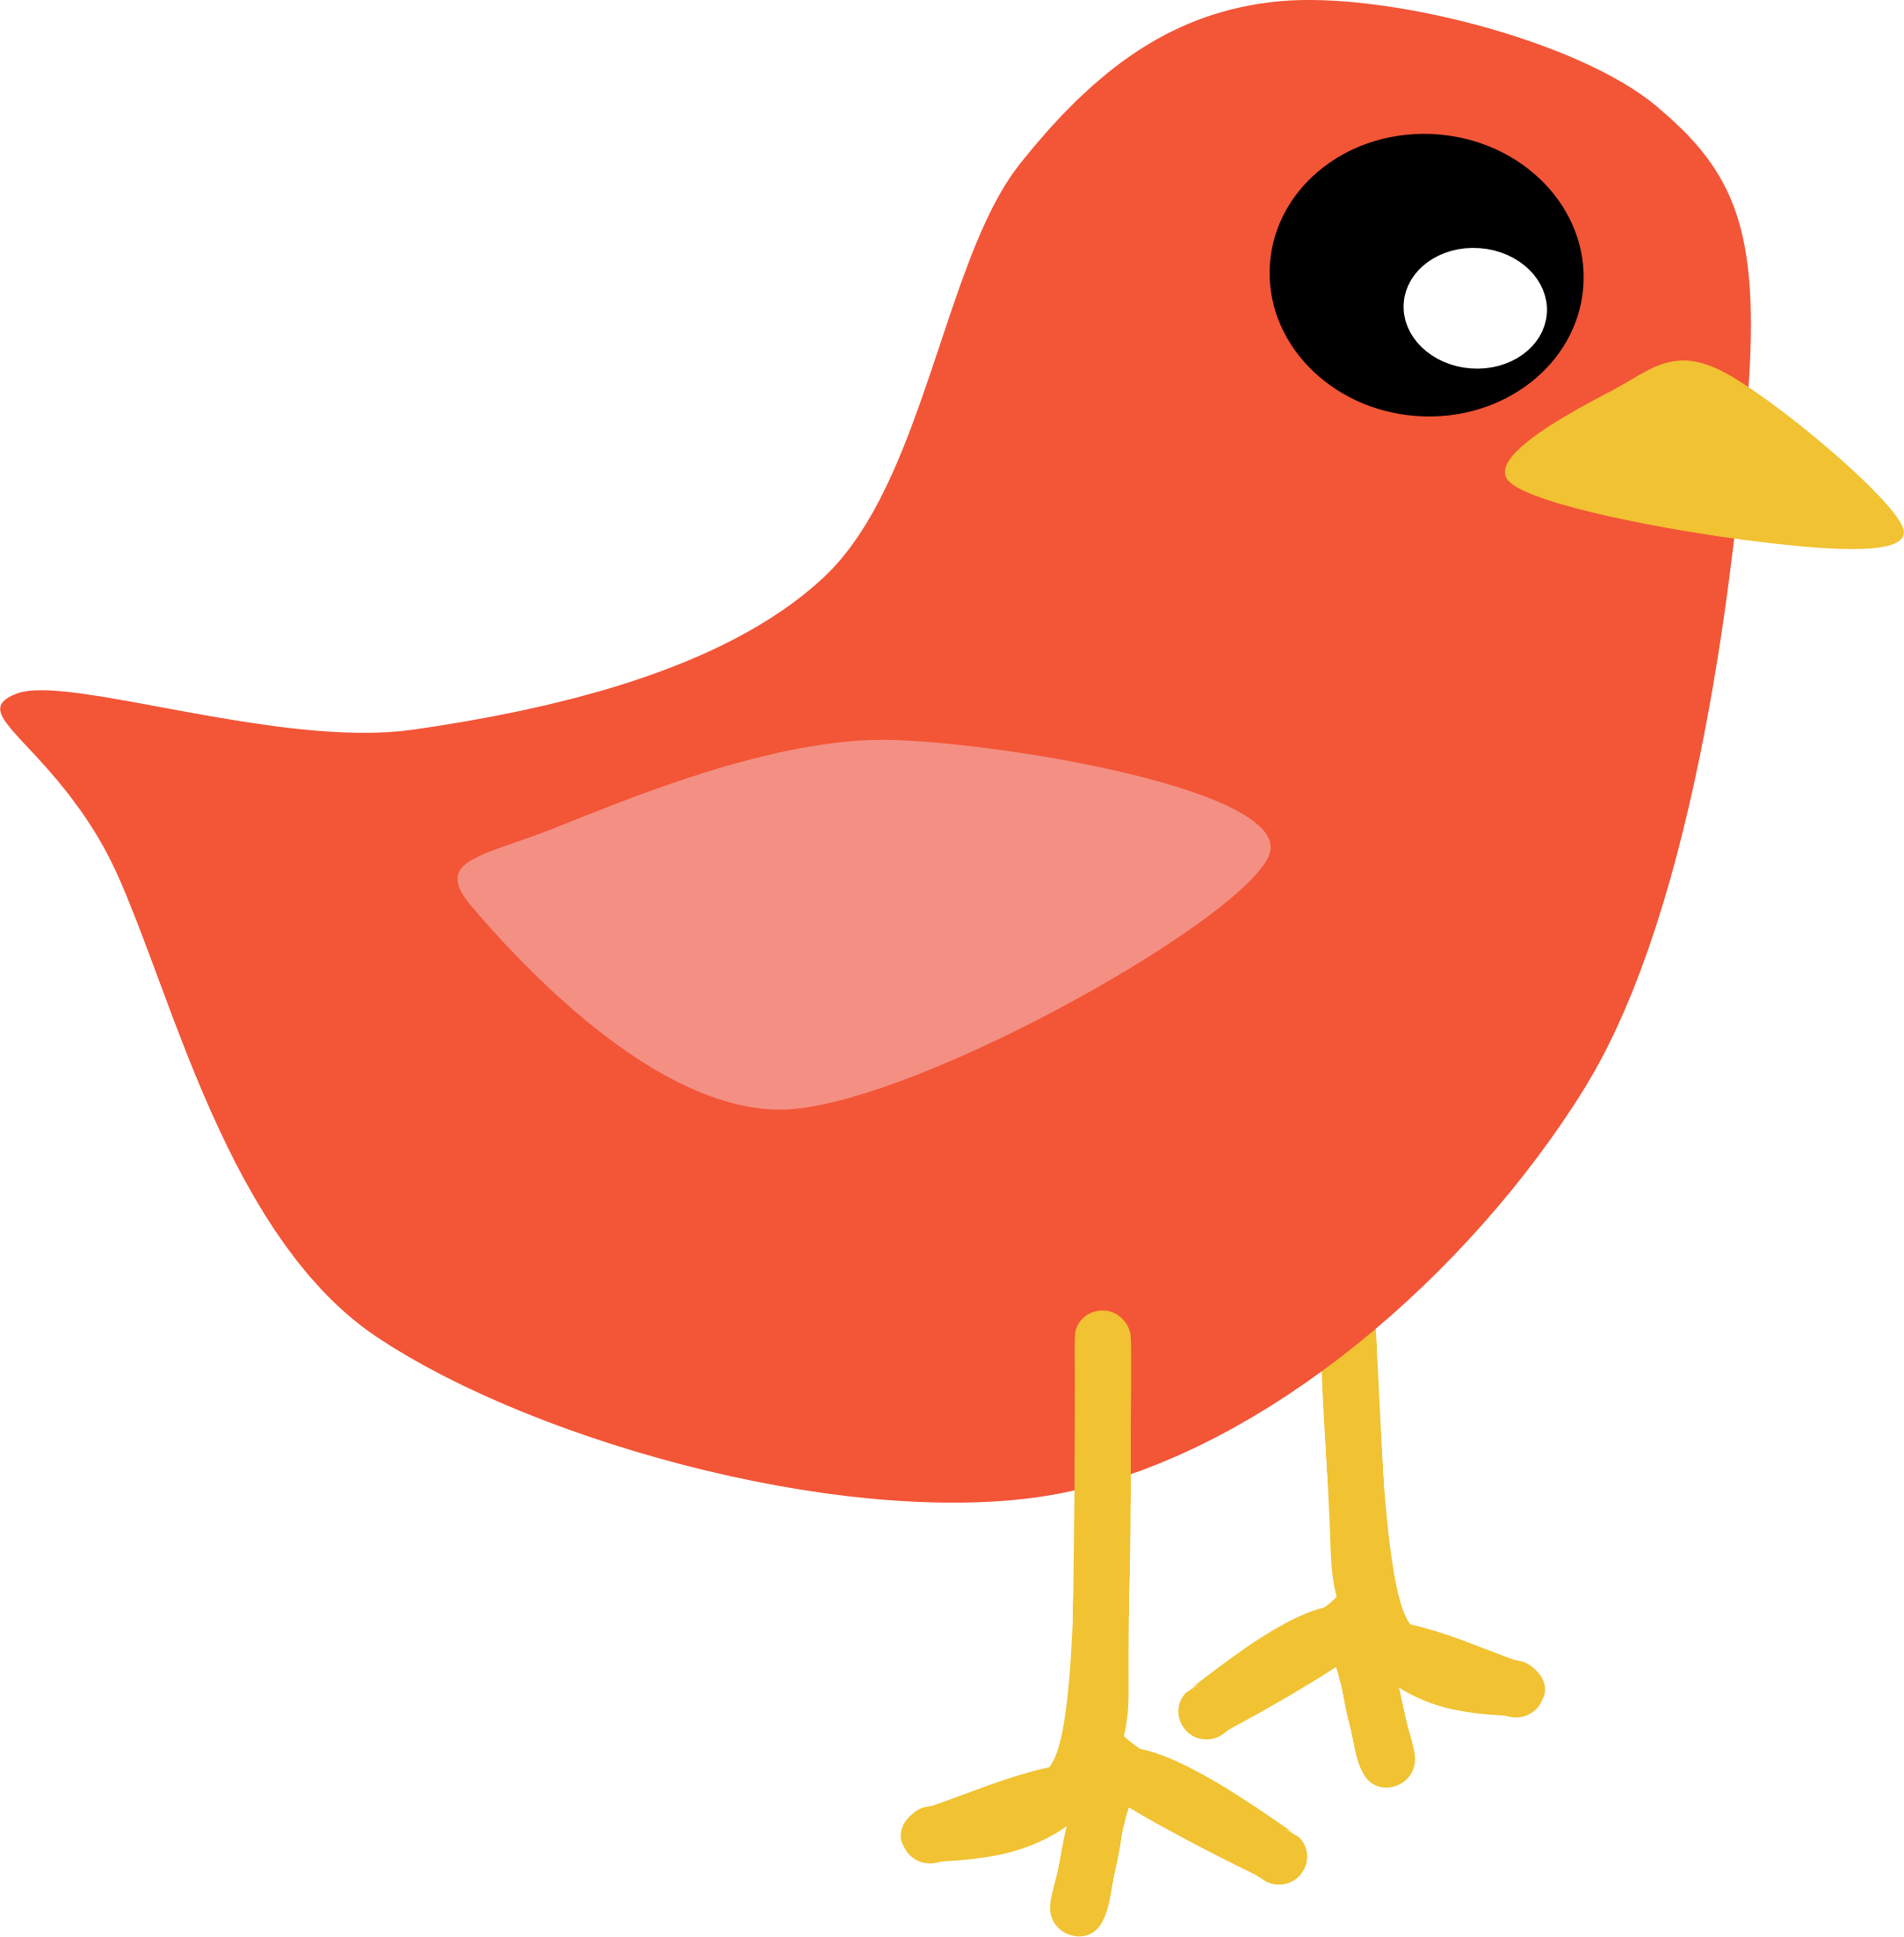 Red big image png. Pet clipart blue bird